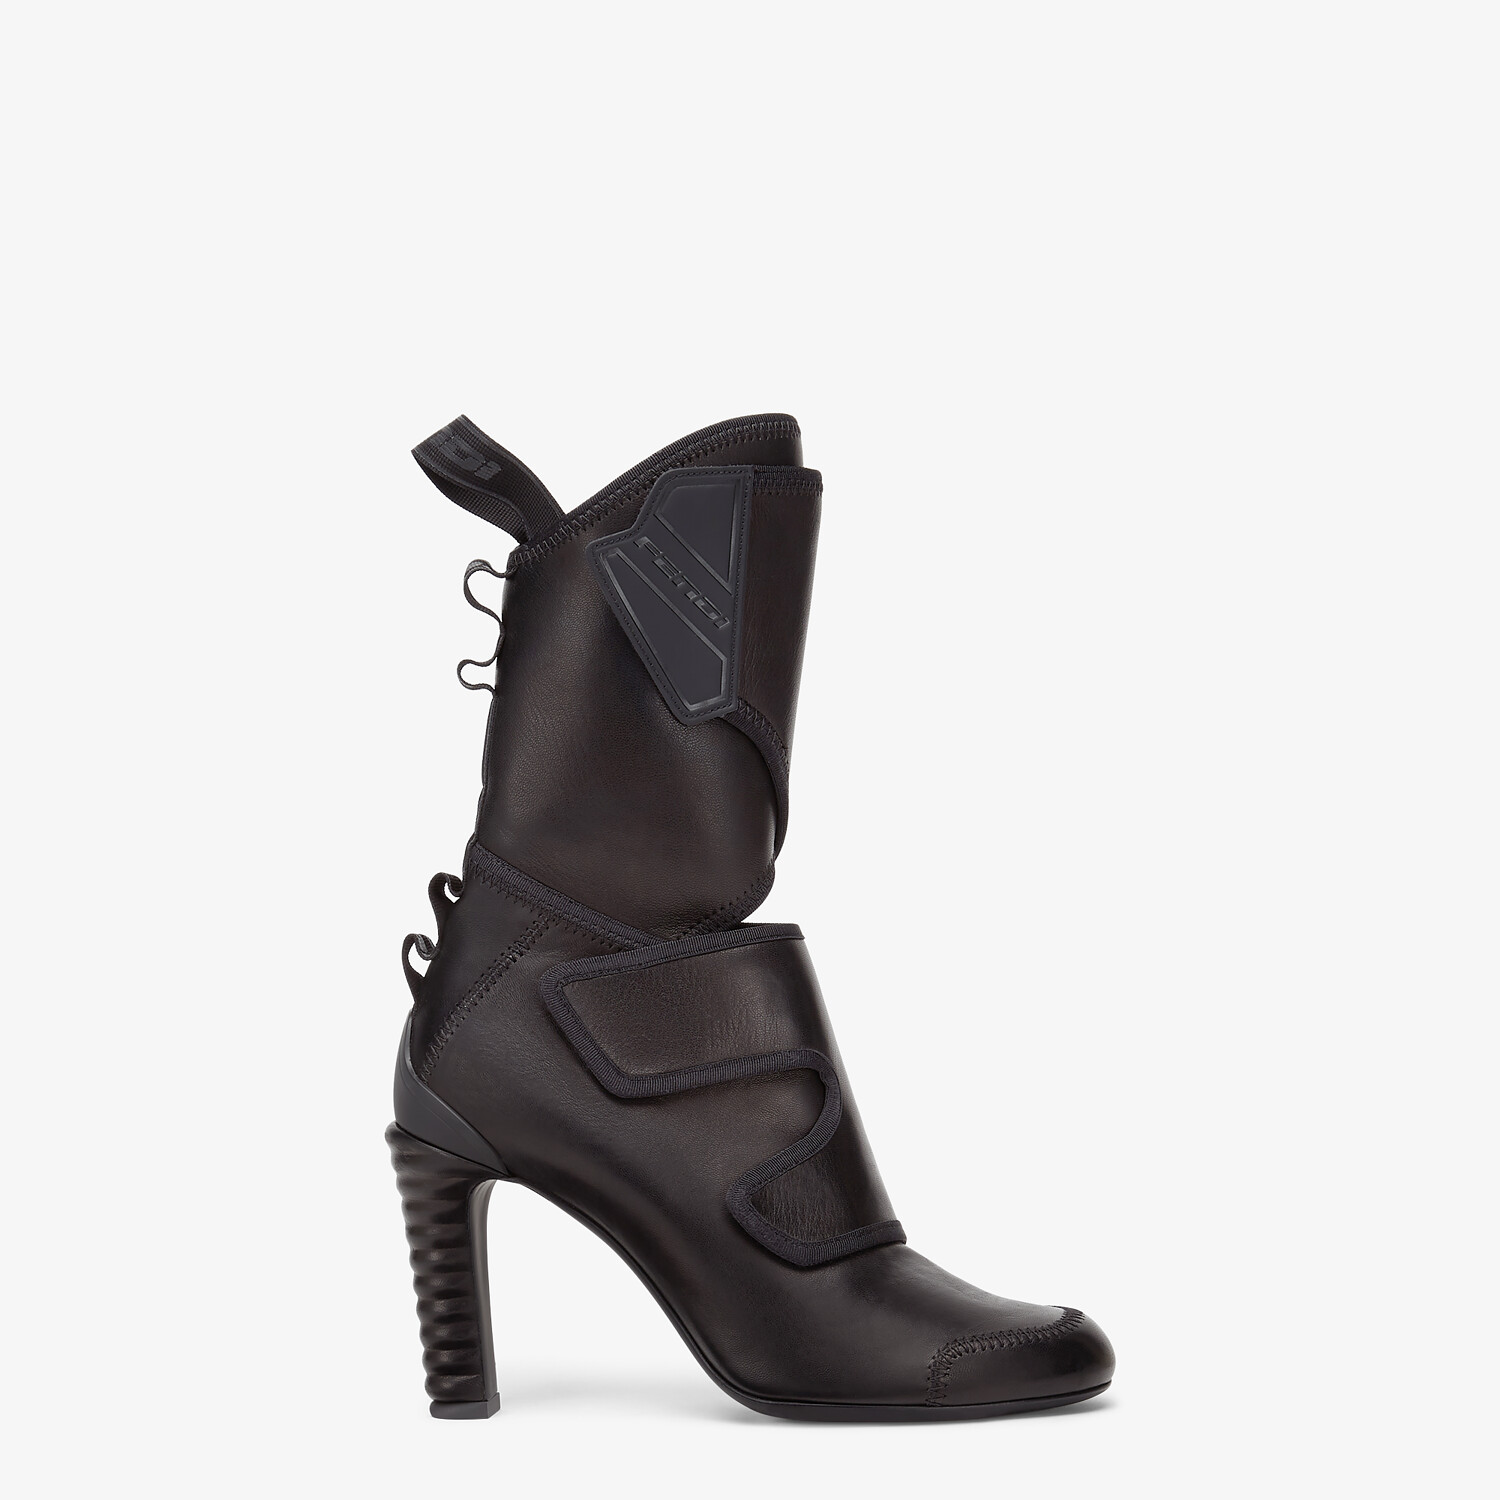 FENDI ANKLE BOOTS - Black leather Promenade Booties - view 1 detail